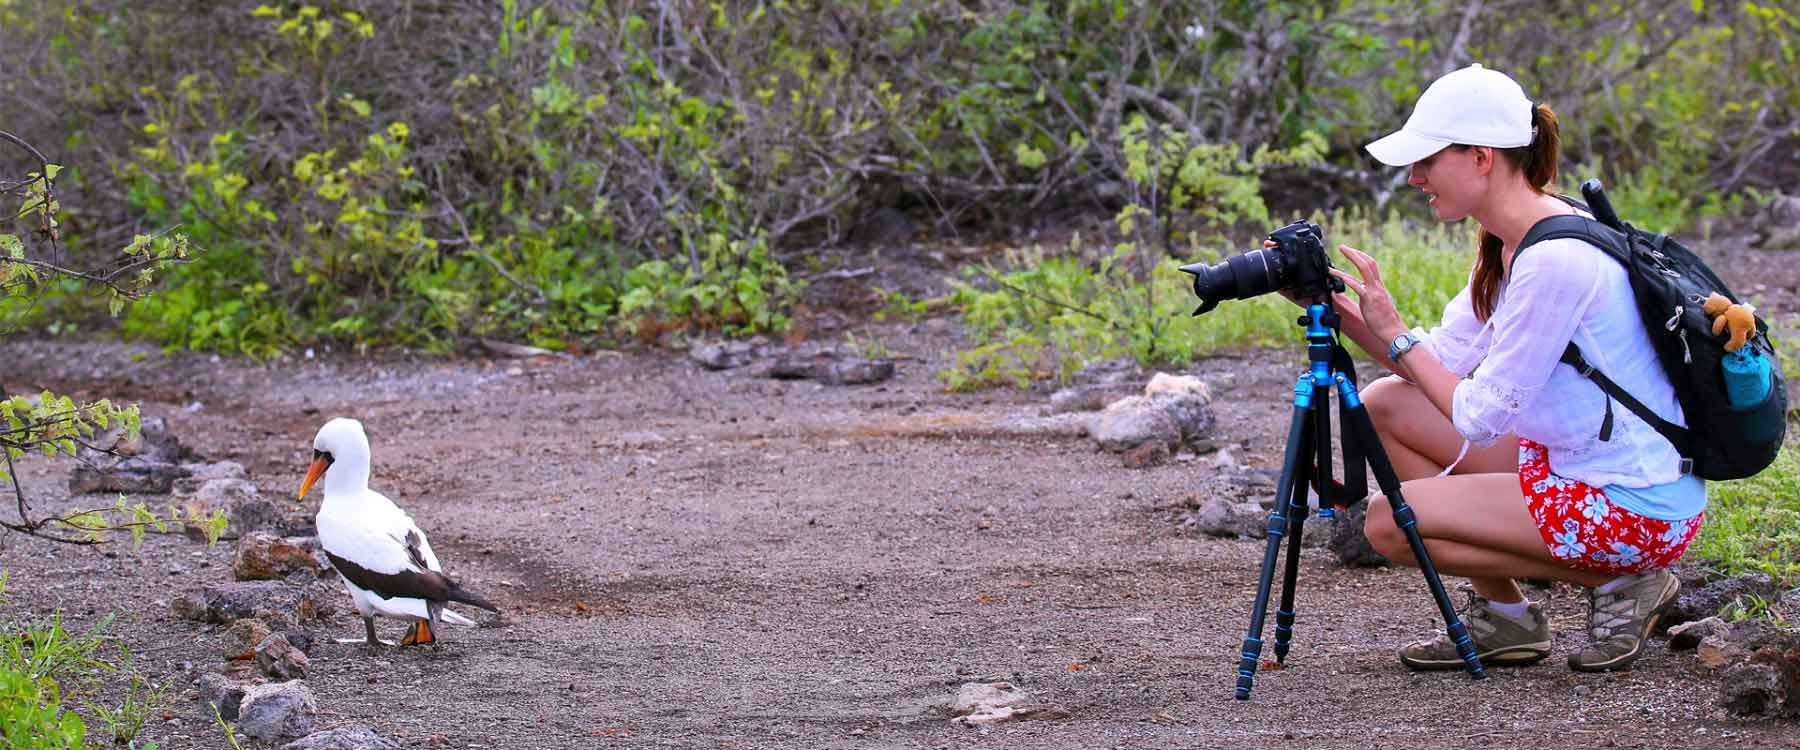 taking picture of albatros in galapagos 2020